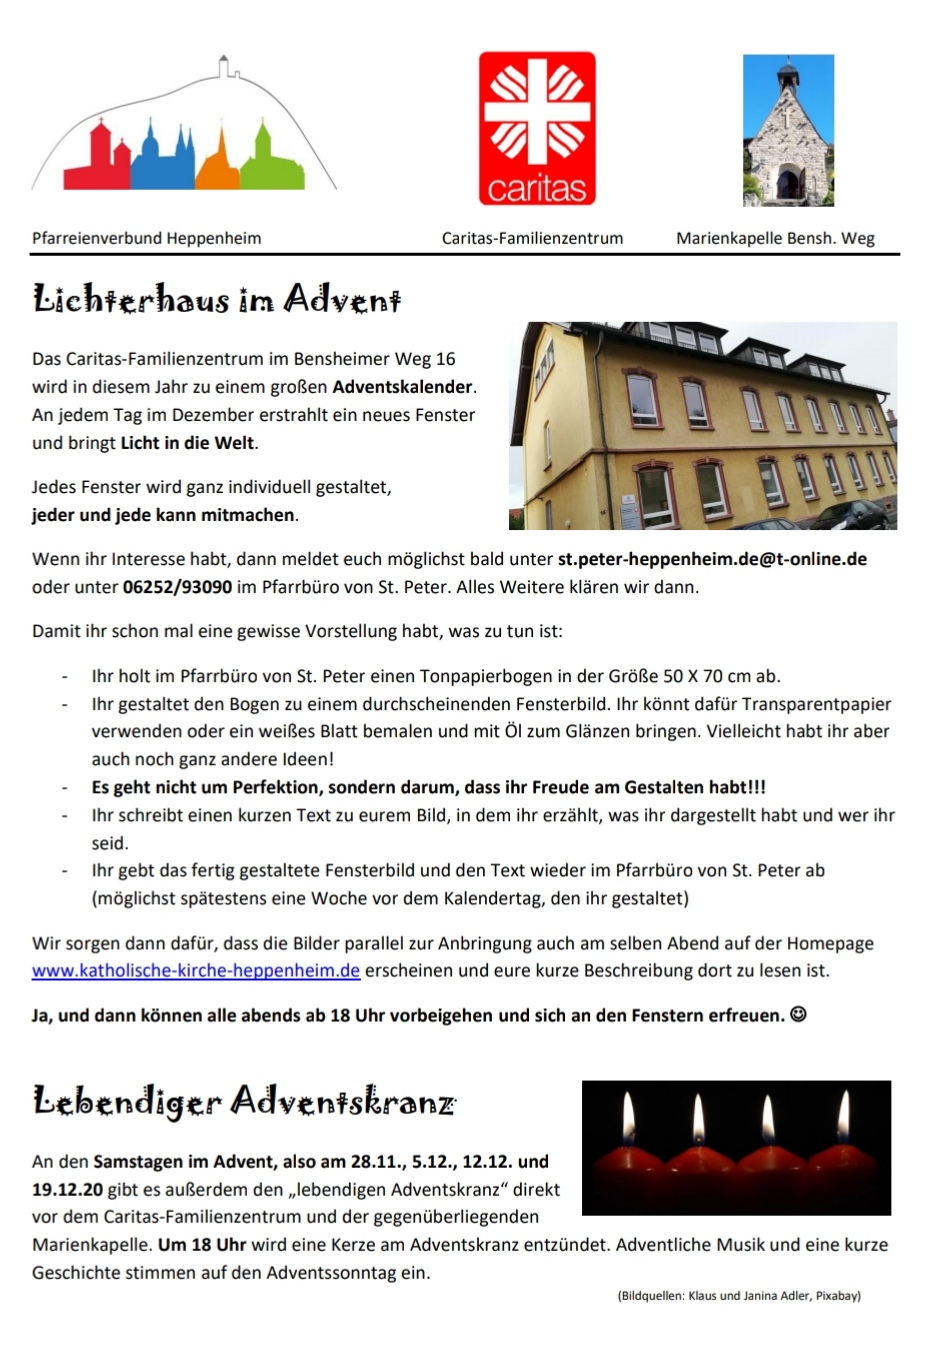 advent20a (c) PV Heppenheim